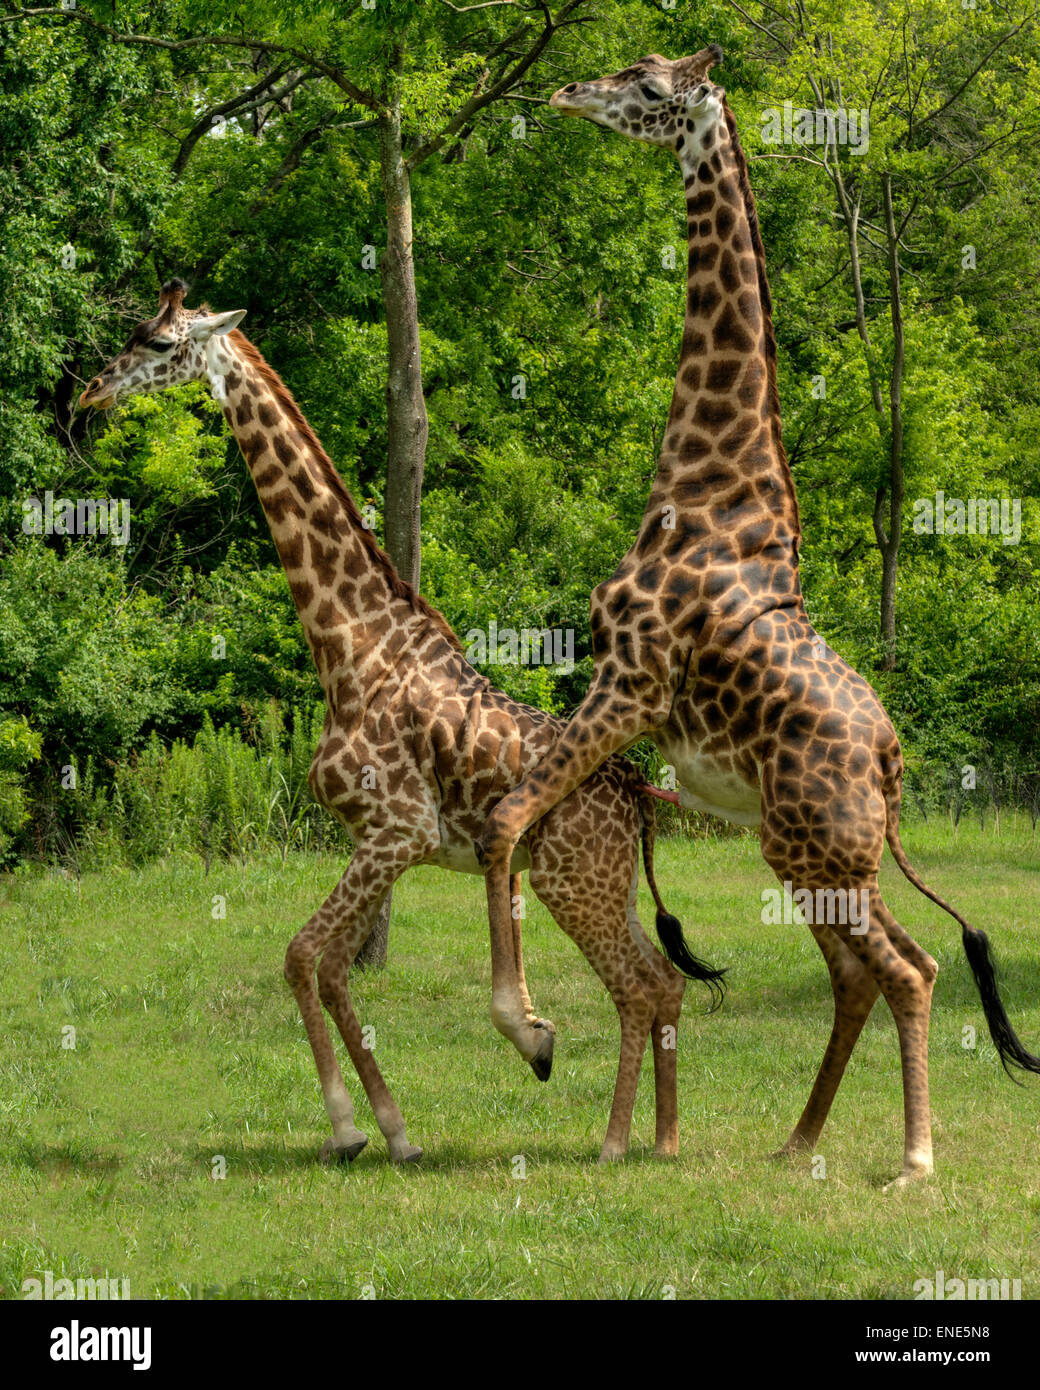 Adolescent giraffes learning how to mate at the Nashville ...  Adolescent gira...